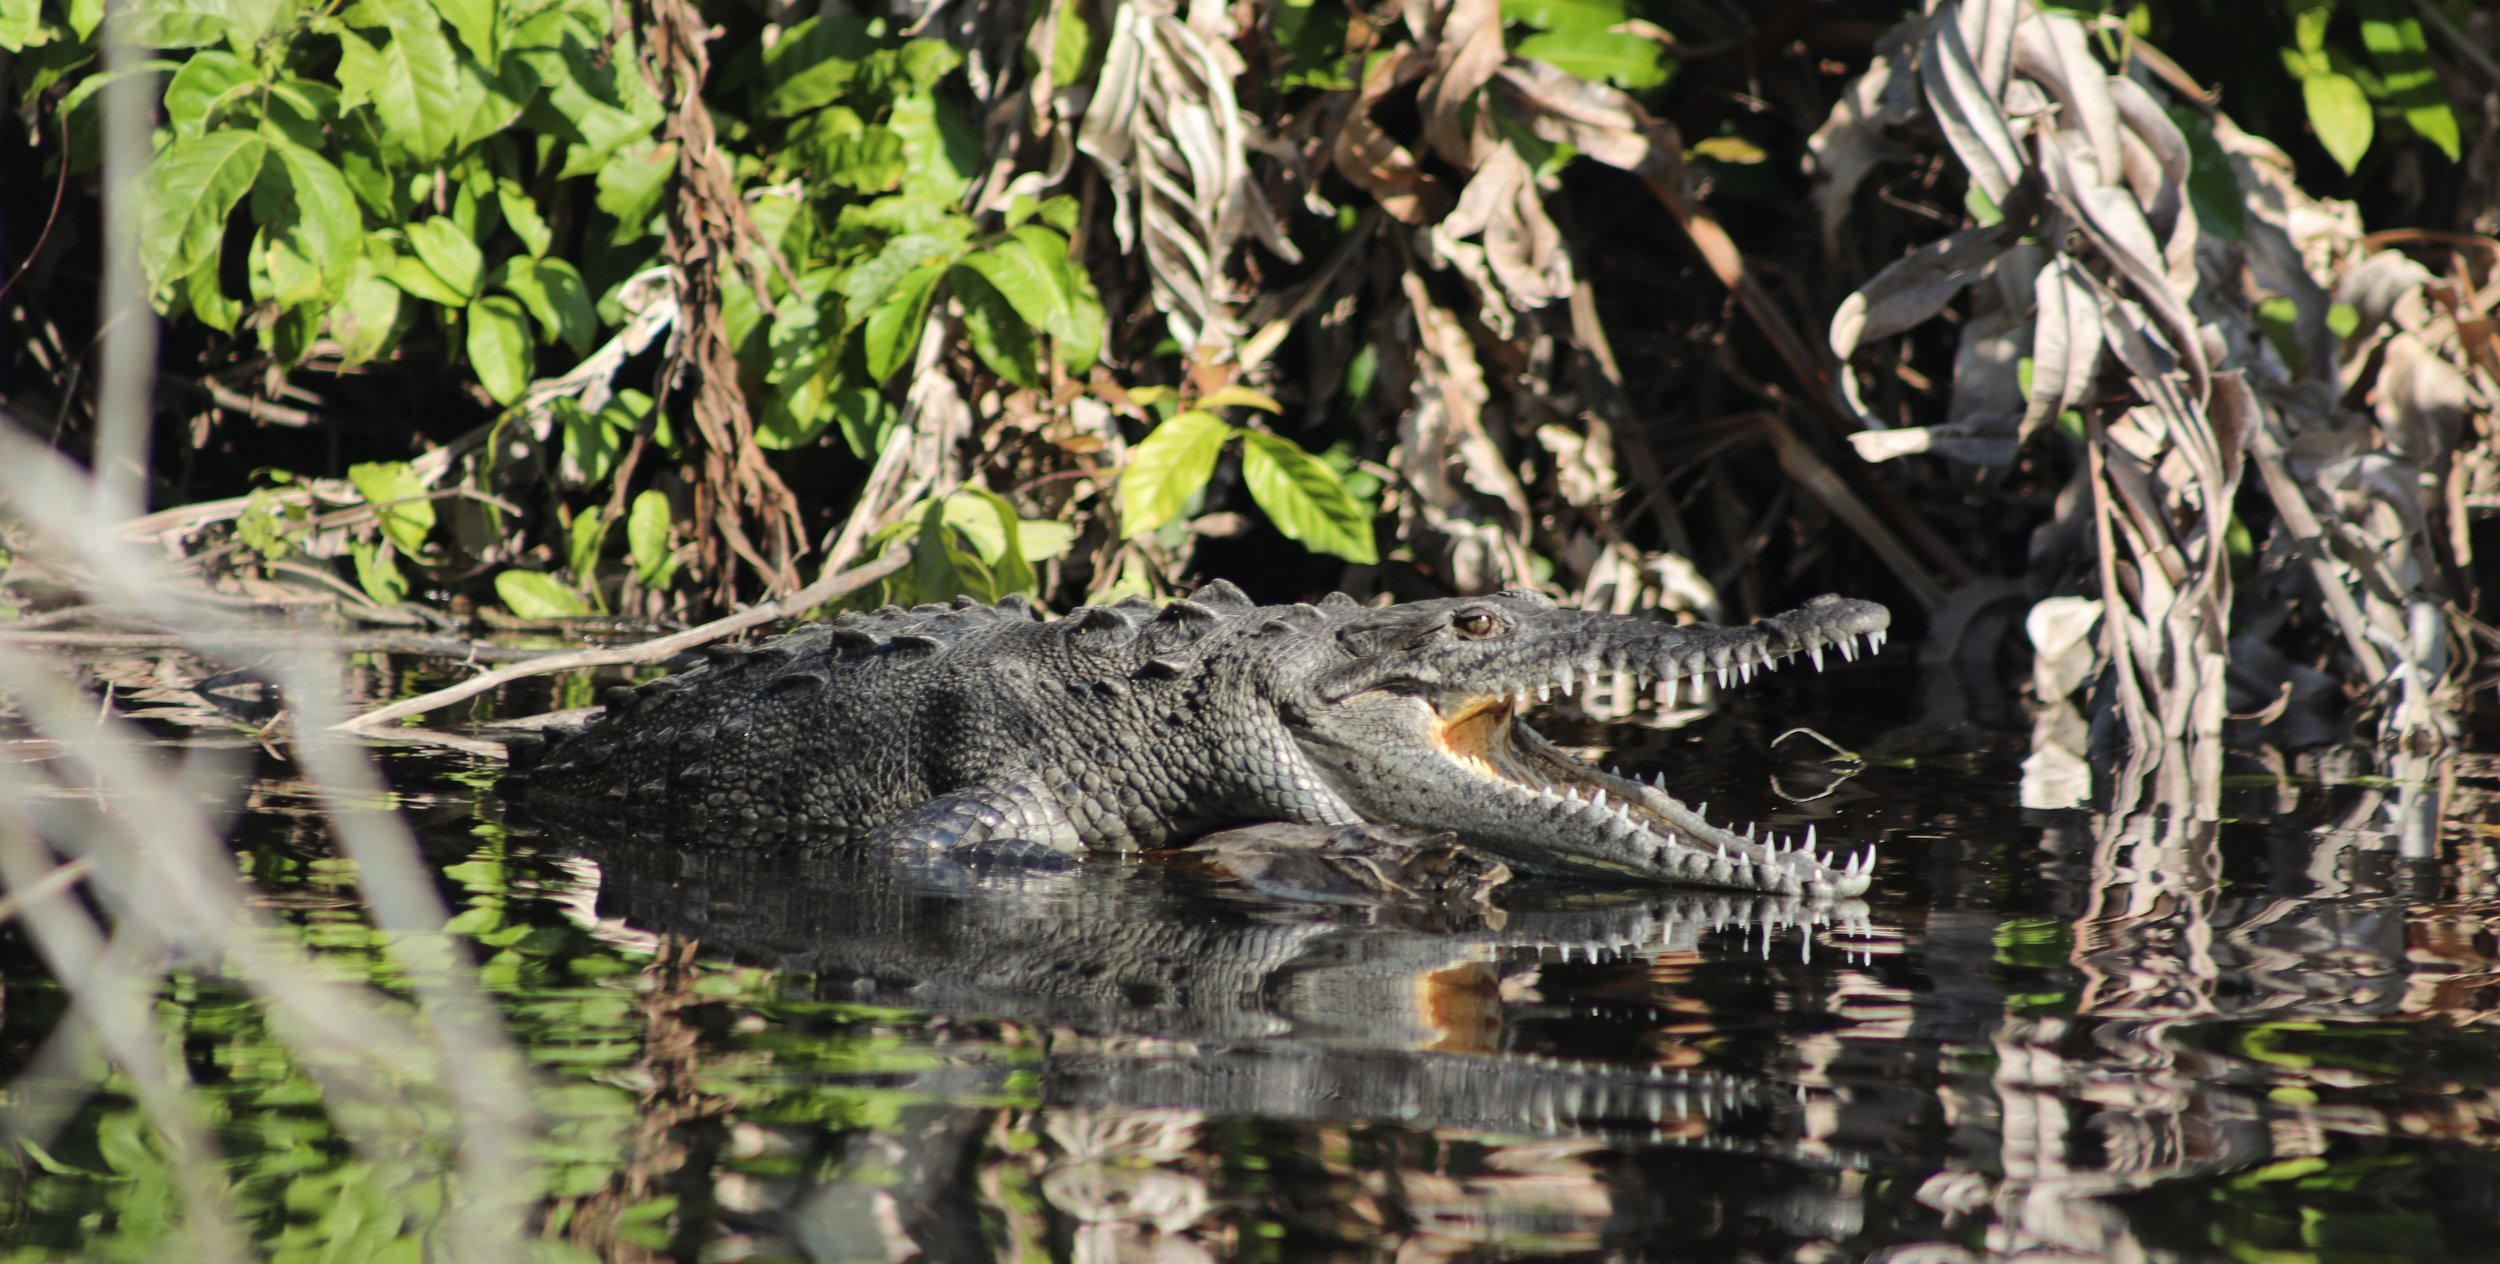 One of the many wild, american crocodiles we saw on our river tour.